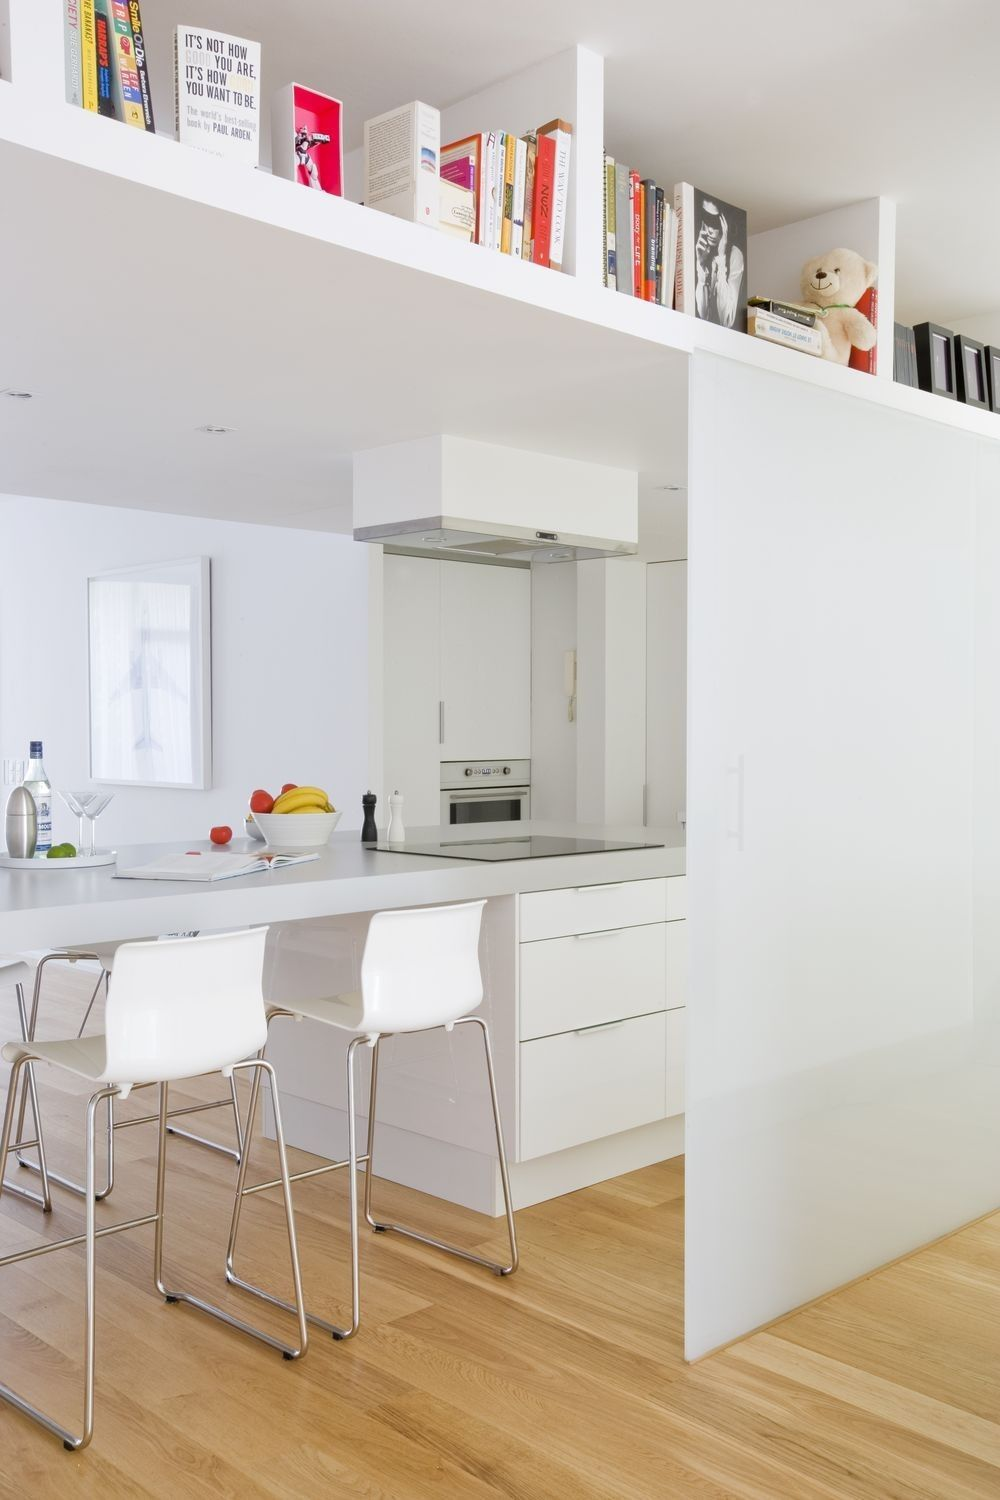 27 simple small kitchen ideas to maximize space trick